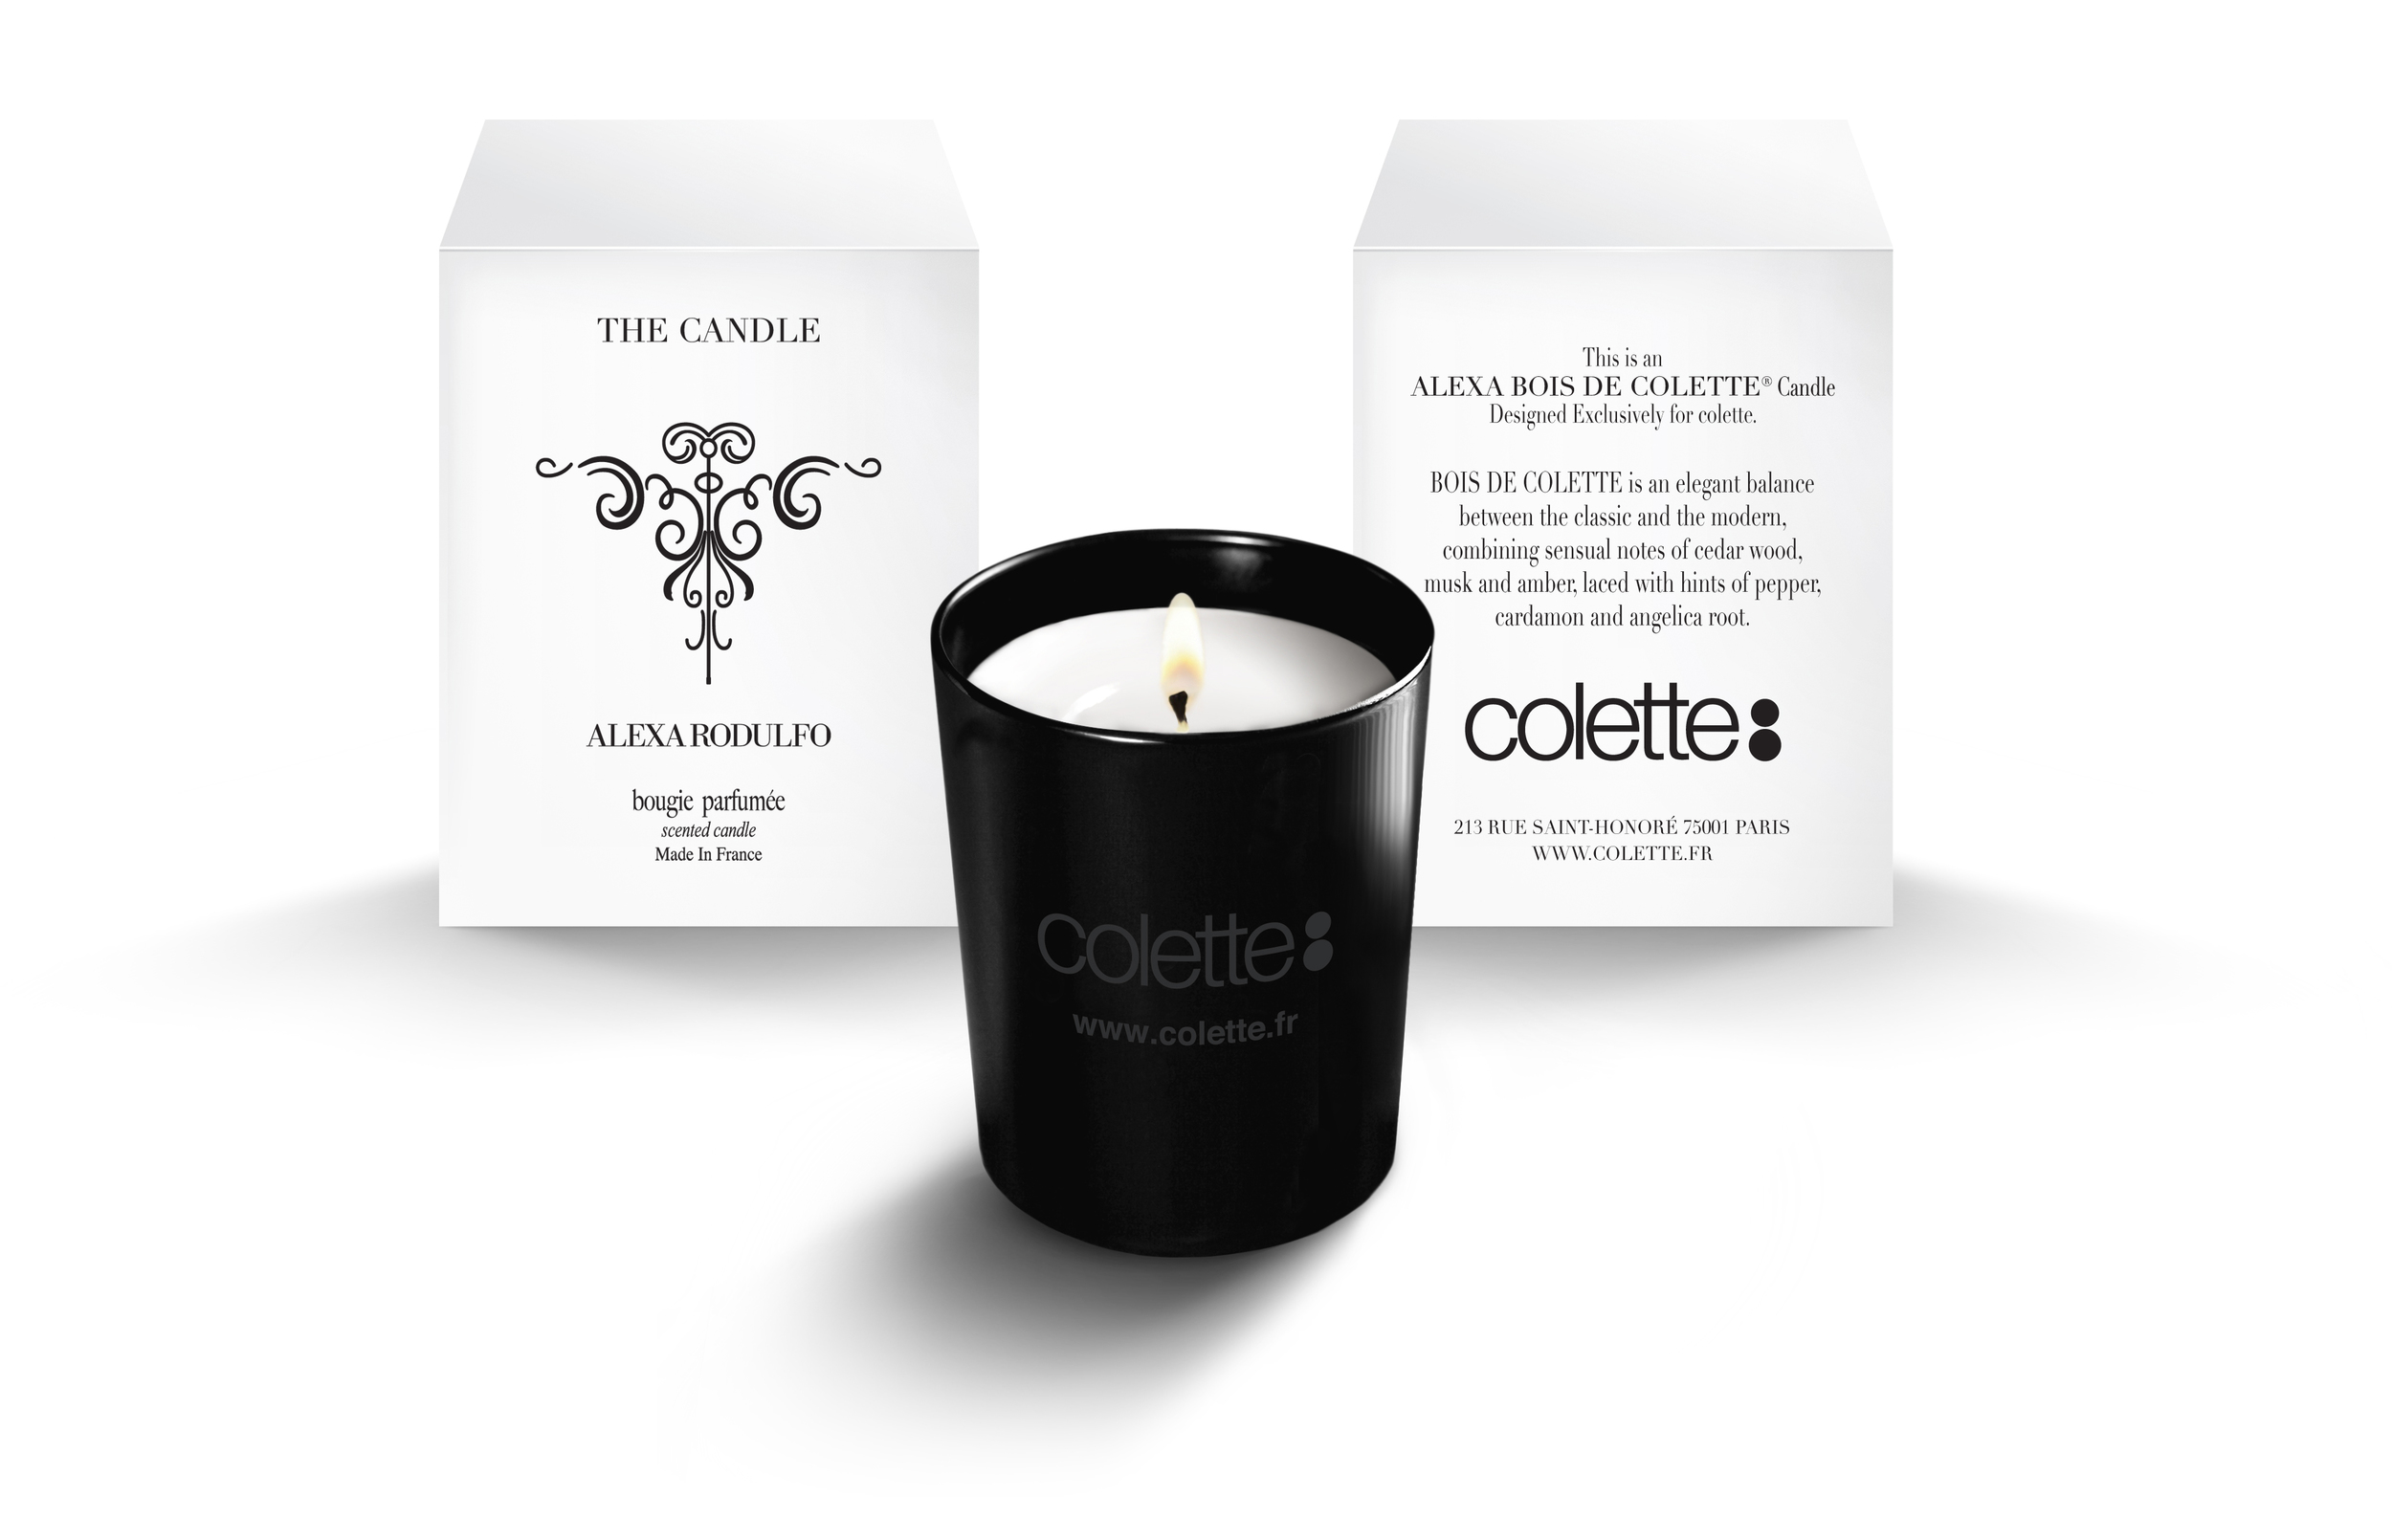 THE-CANDLE-BOX-COLETTE-HIGHRES.jpg